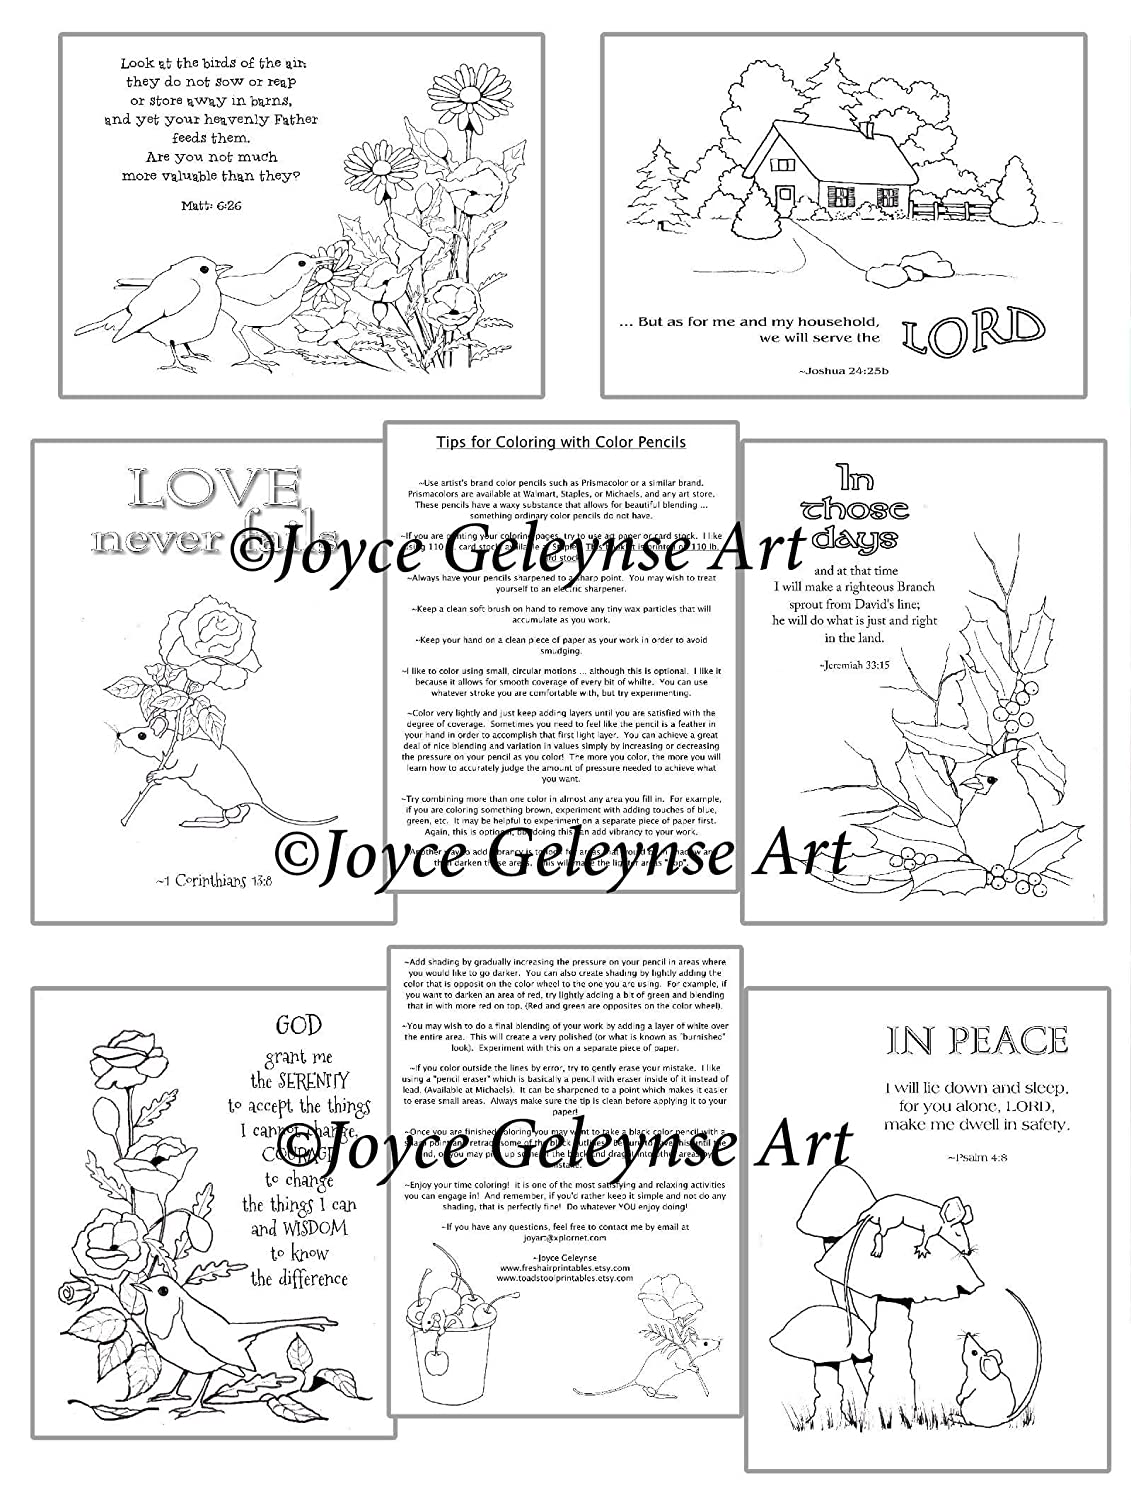 - Amazon.com: BIBLE VERSES TO COLOR: Hand Illustrated Bible Verses